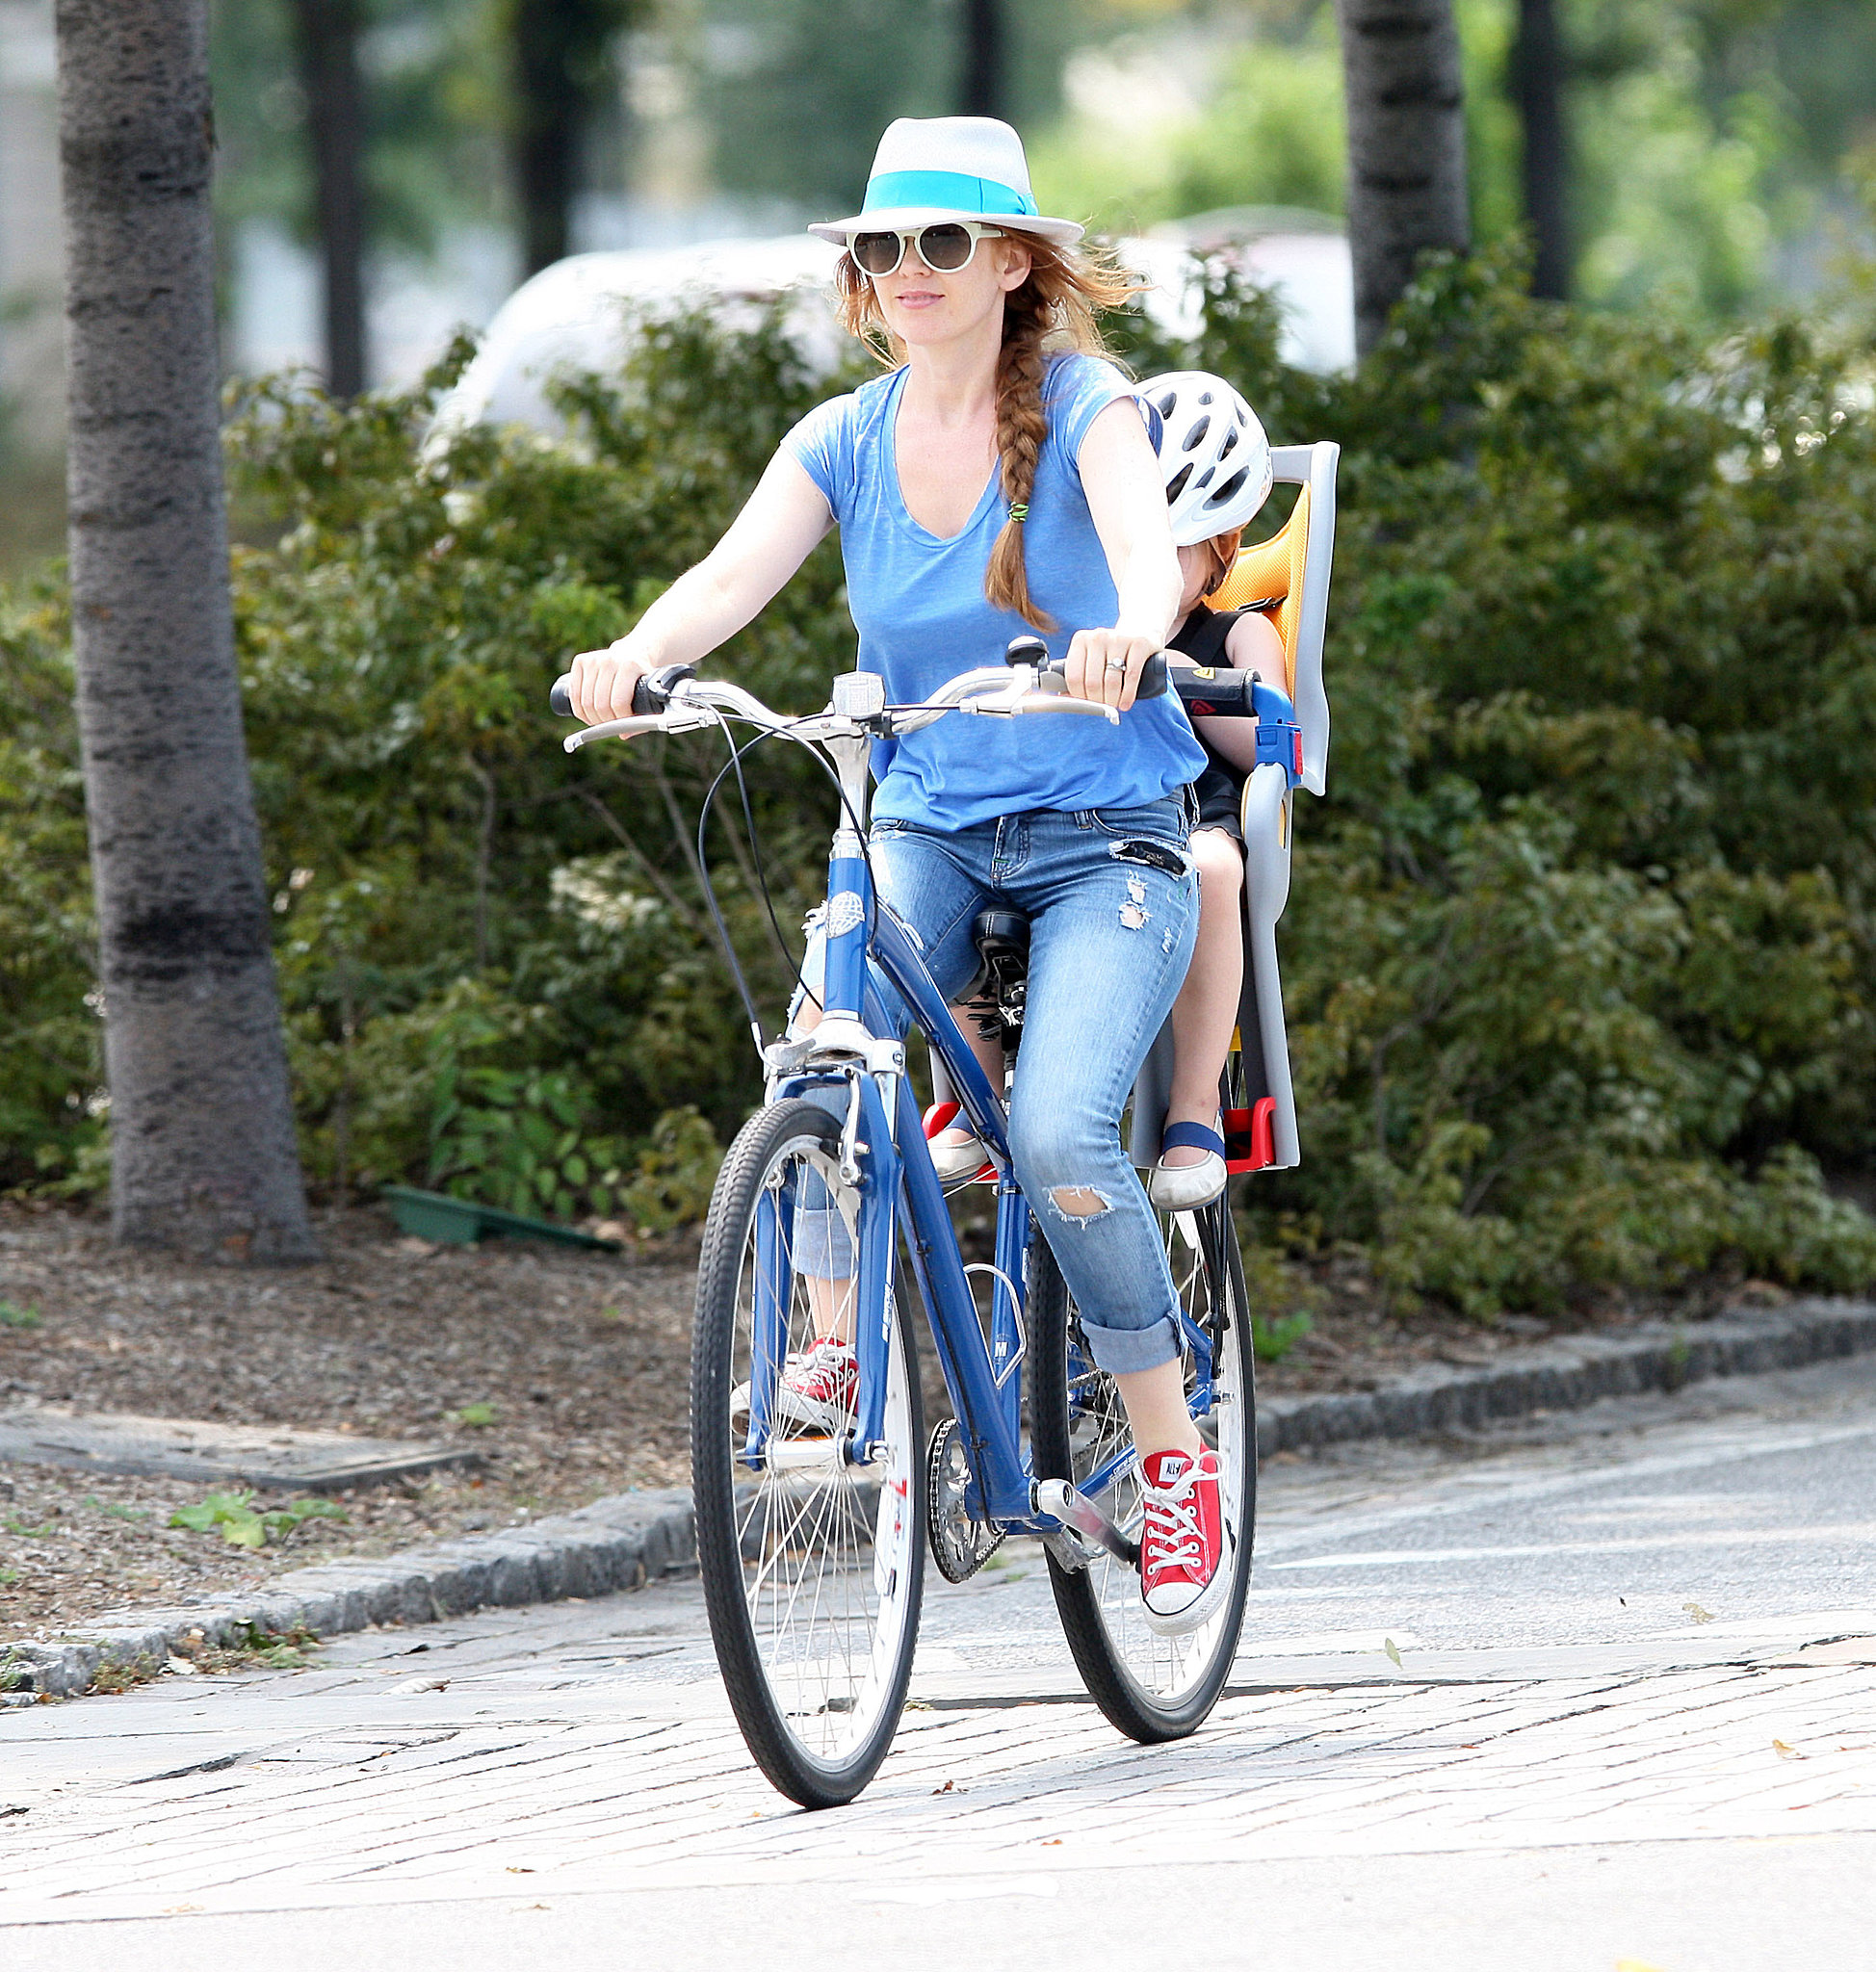 In August 2011, Isla Fisher rode a bike with her daughter Olive in the Big Apple.